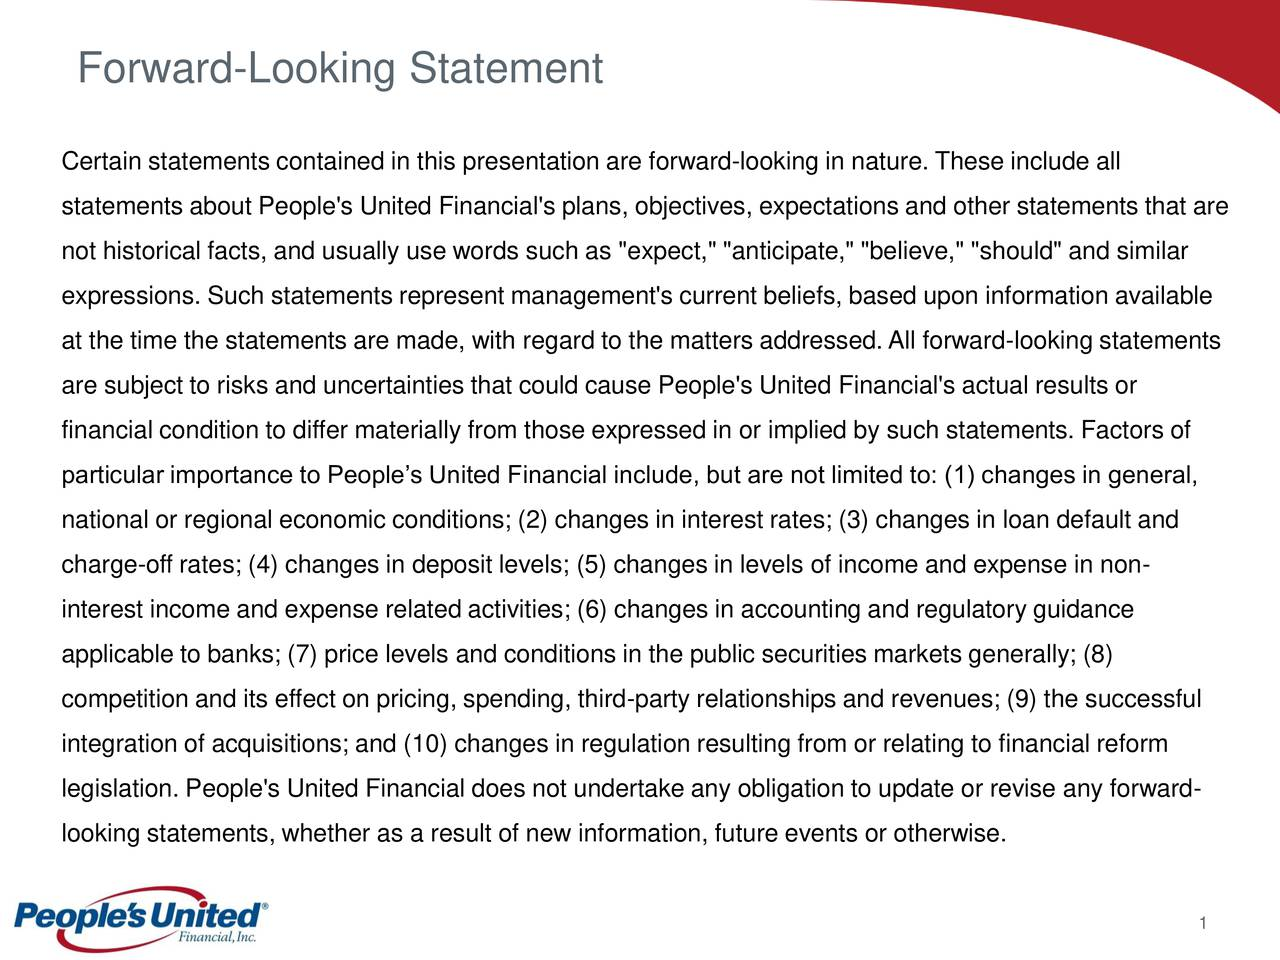 "Certain statements contained in this presentation are forward-looking in nature. These include all statements about People's United Financial's plans, objectives, expectations and other statements that are not historical facts, and usually use words such as ""expect,"" ""anticipate,"" ""believe,"" ""should"" and similar expressions. Such statements represent management's current beliefs, based upon information available at the time the statements are made, with regard to the matters addressed.All forward-looking statements are subject to risks and uncertainties that could cause People's United Financial's actual results or financial condition to differ materially from those expressed in or implied by such statements. Factors of particular importance to Peoples United Financial include, but are not limited to: (1) changes in general, national or regional economic conditions; (2) changes in interest rates; (3) changes in loan default and charge-off rates; (4) changes in deposit levels; (5) changes in levels of income and expense in non- interest income and expense related activities; (6) changes in accounting and regulatory guidance applicable to banks; (7) price levels and conditions in the public securities markets generally; (8) competition and its effect on pricing, spending, third-party relationships and revenues; (9) the successful integration of acquisitions; and (10) changes in regulation resulting from or relating to financial reform legislation. People's United Financial does not undertake any obligation to update or revise any forward- looking statements, whether as a result of new information, future events or otherwise. 1"